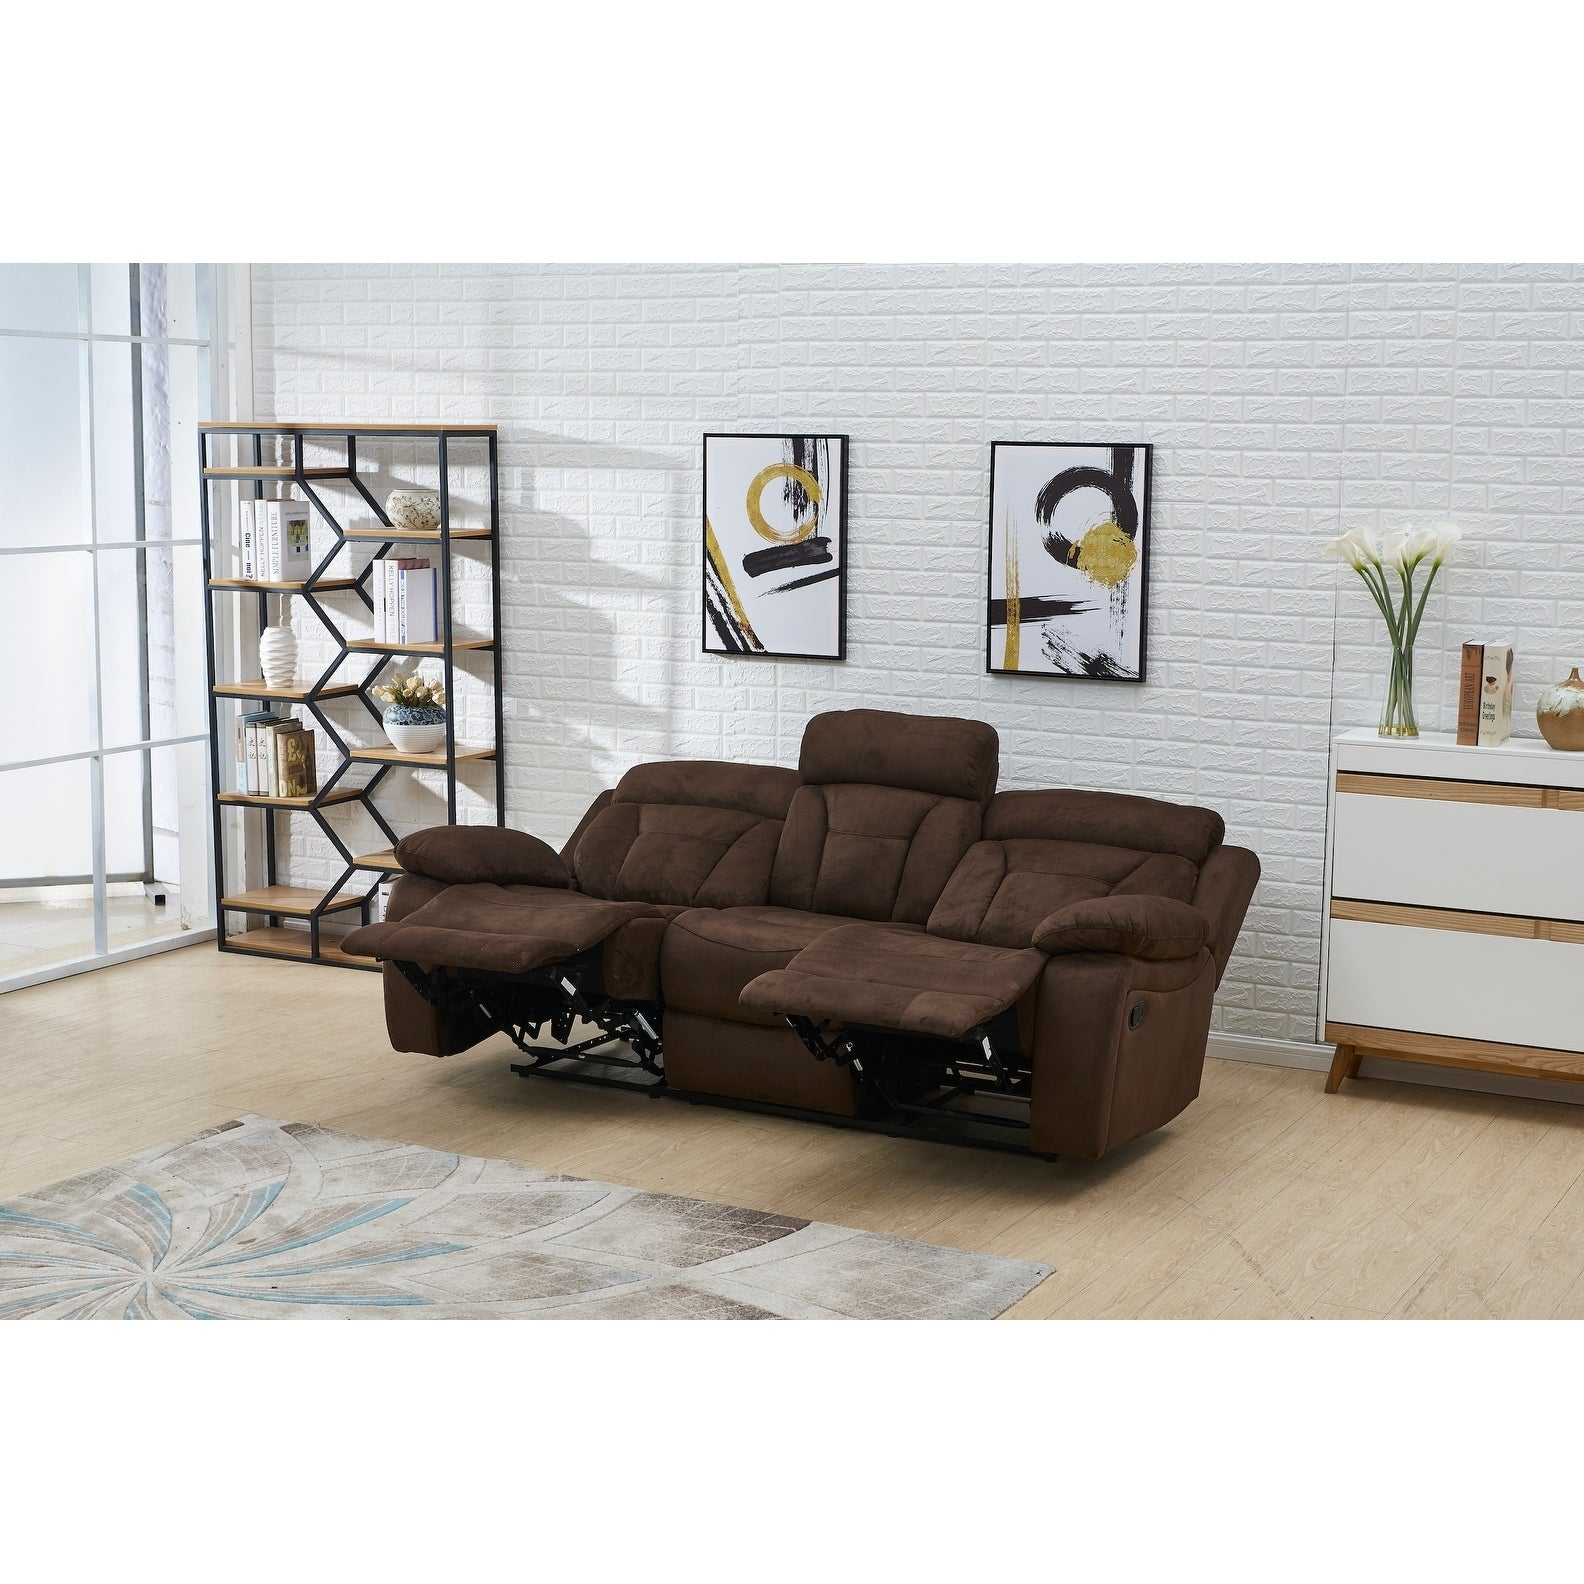 Vanity Art Microfiber 3 Seat Recliner Loveseat Manual Reclining Couch For Small Living Room Dining Room Sofa Set Brown Overstock 27753904